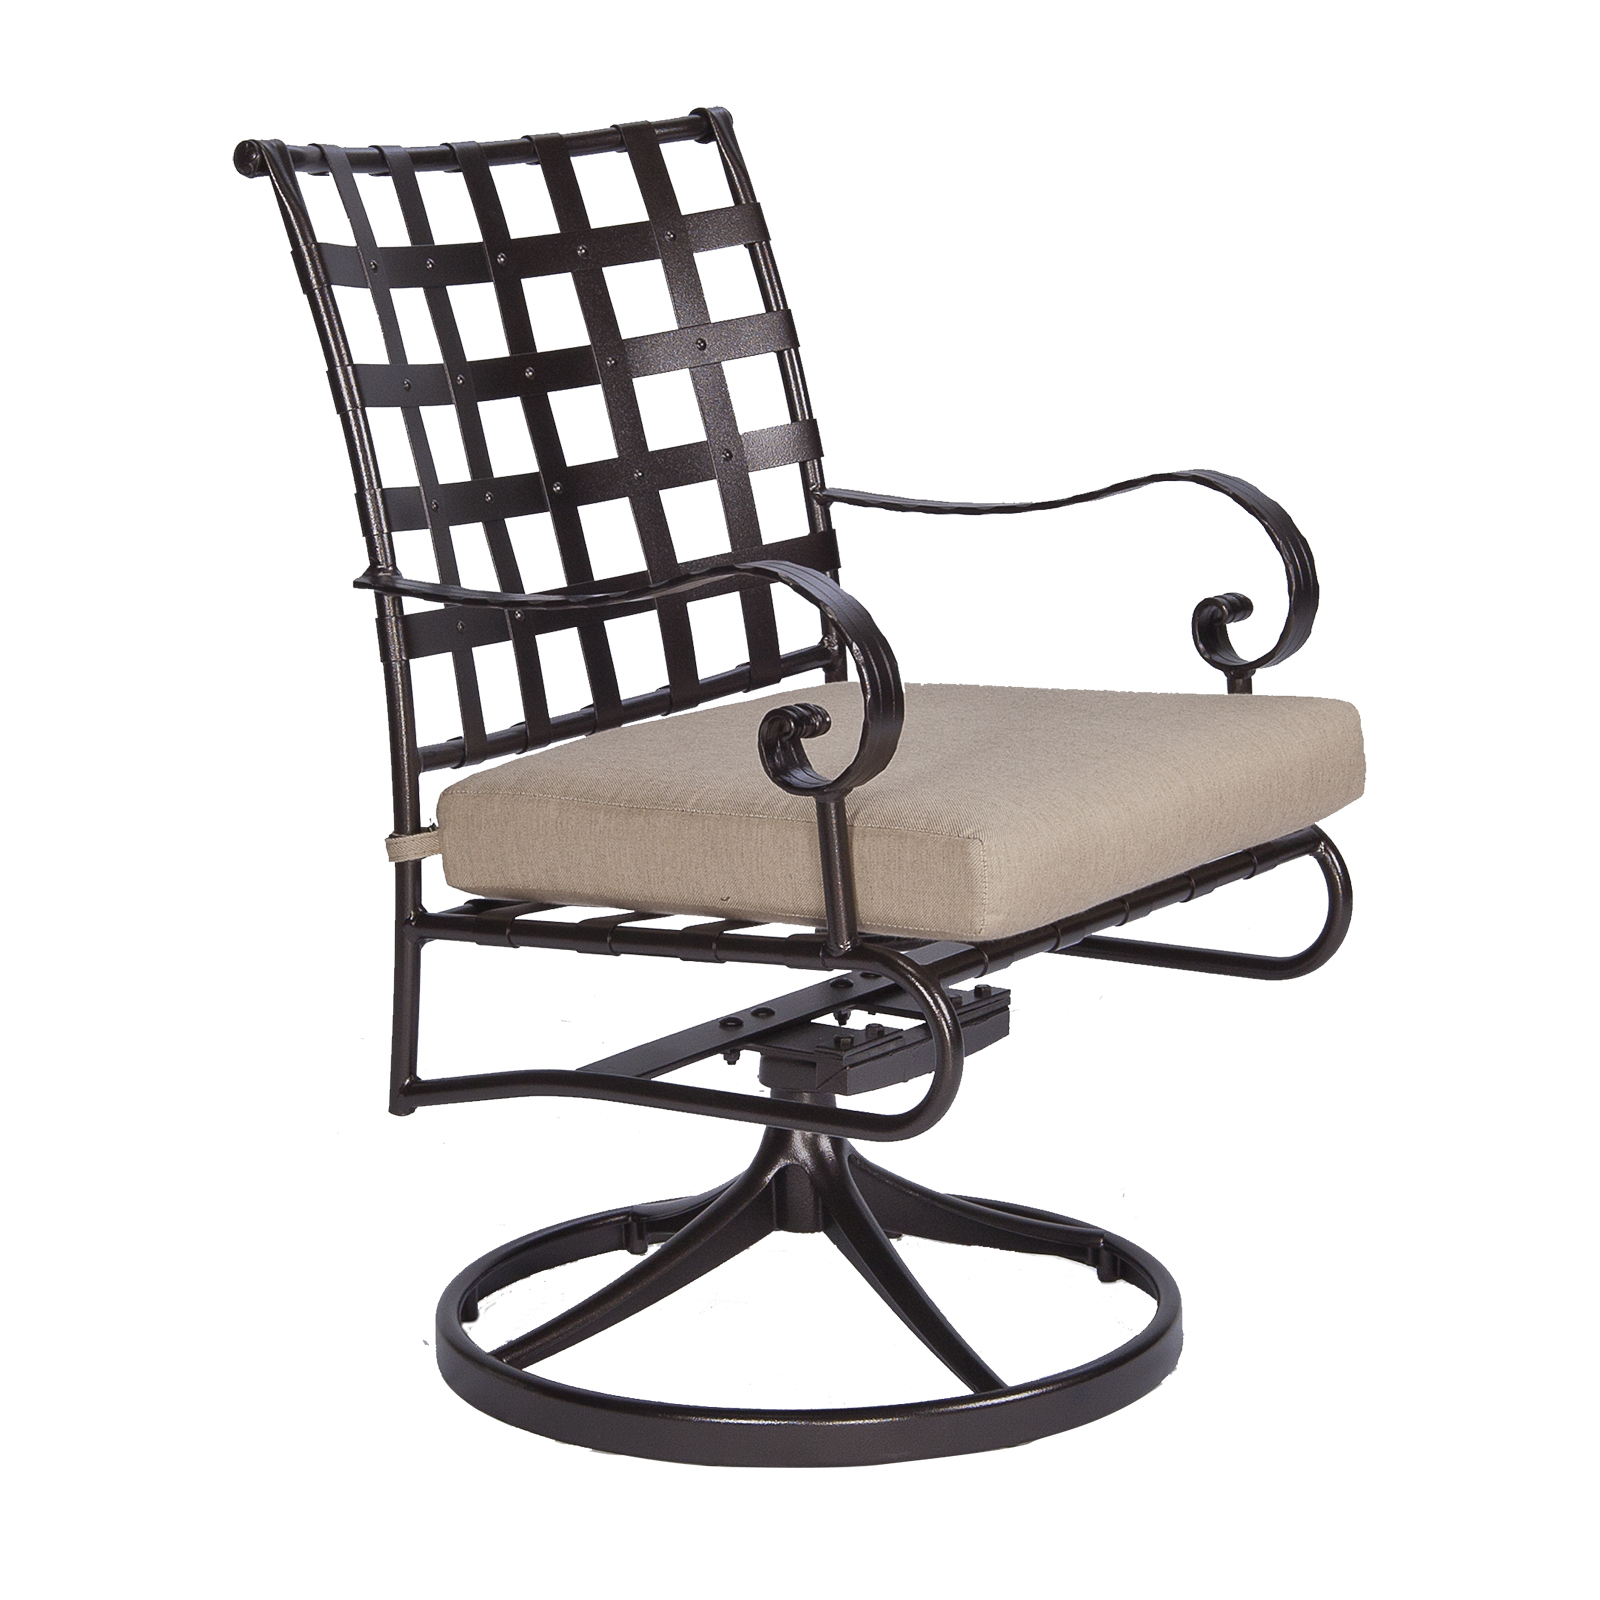 Swivel-Rocker-Dining-Arm-Chair-953-SRW_Catalog_GR35_1600-Classico-W-OW-Lee